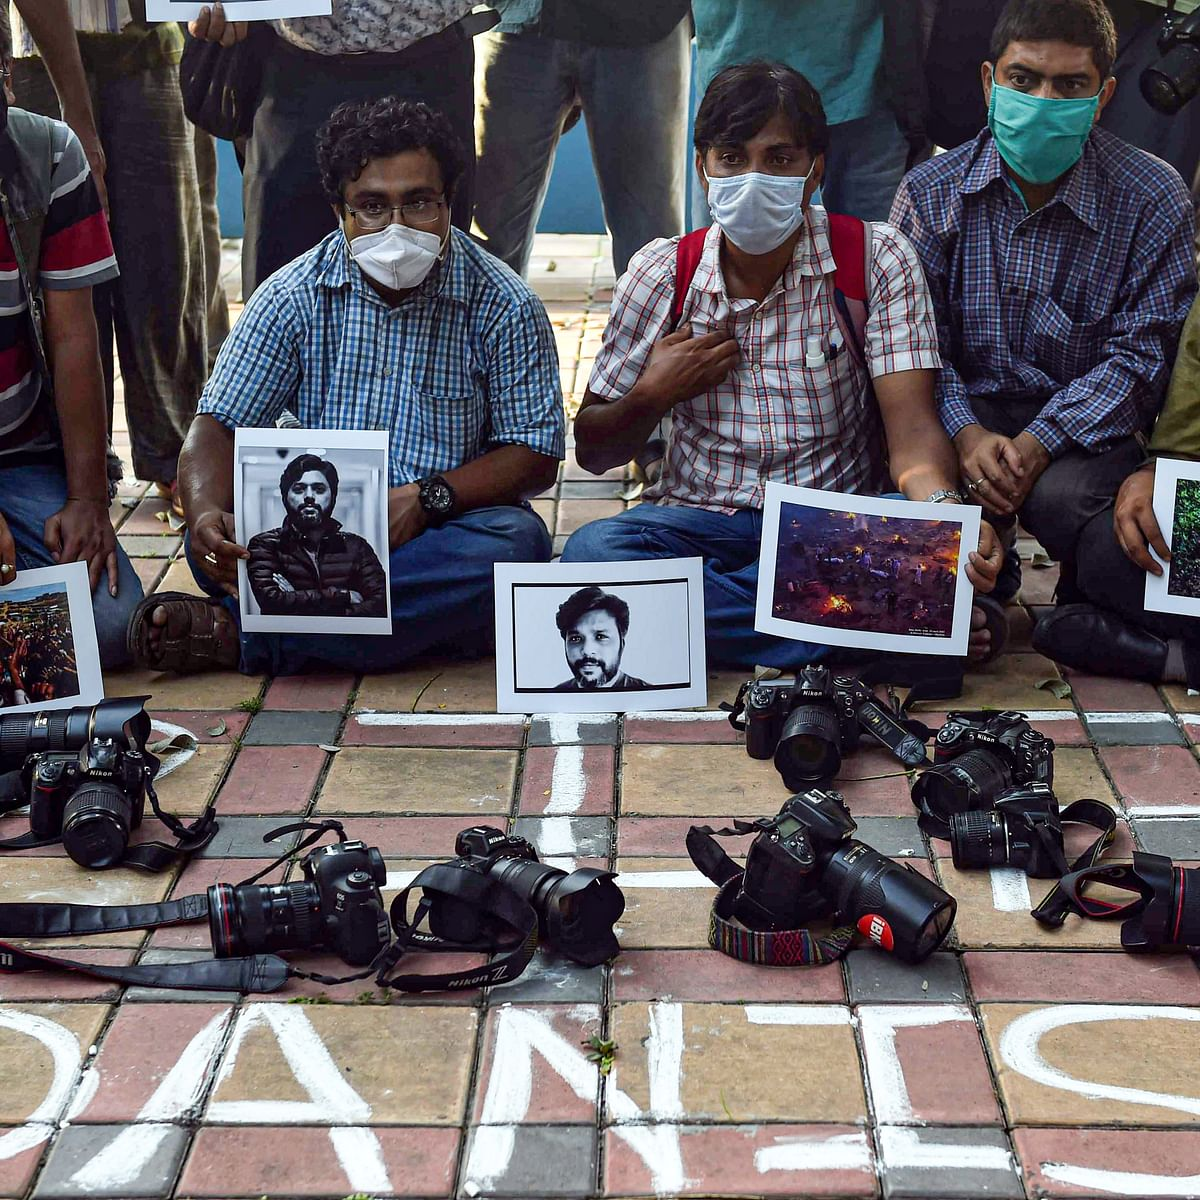 Photographer Danish Siddiqui 'brutally murdered' by Taliban after they verified his identity: US magazine report